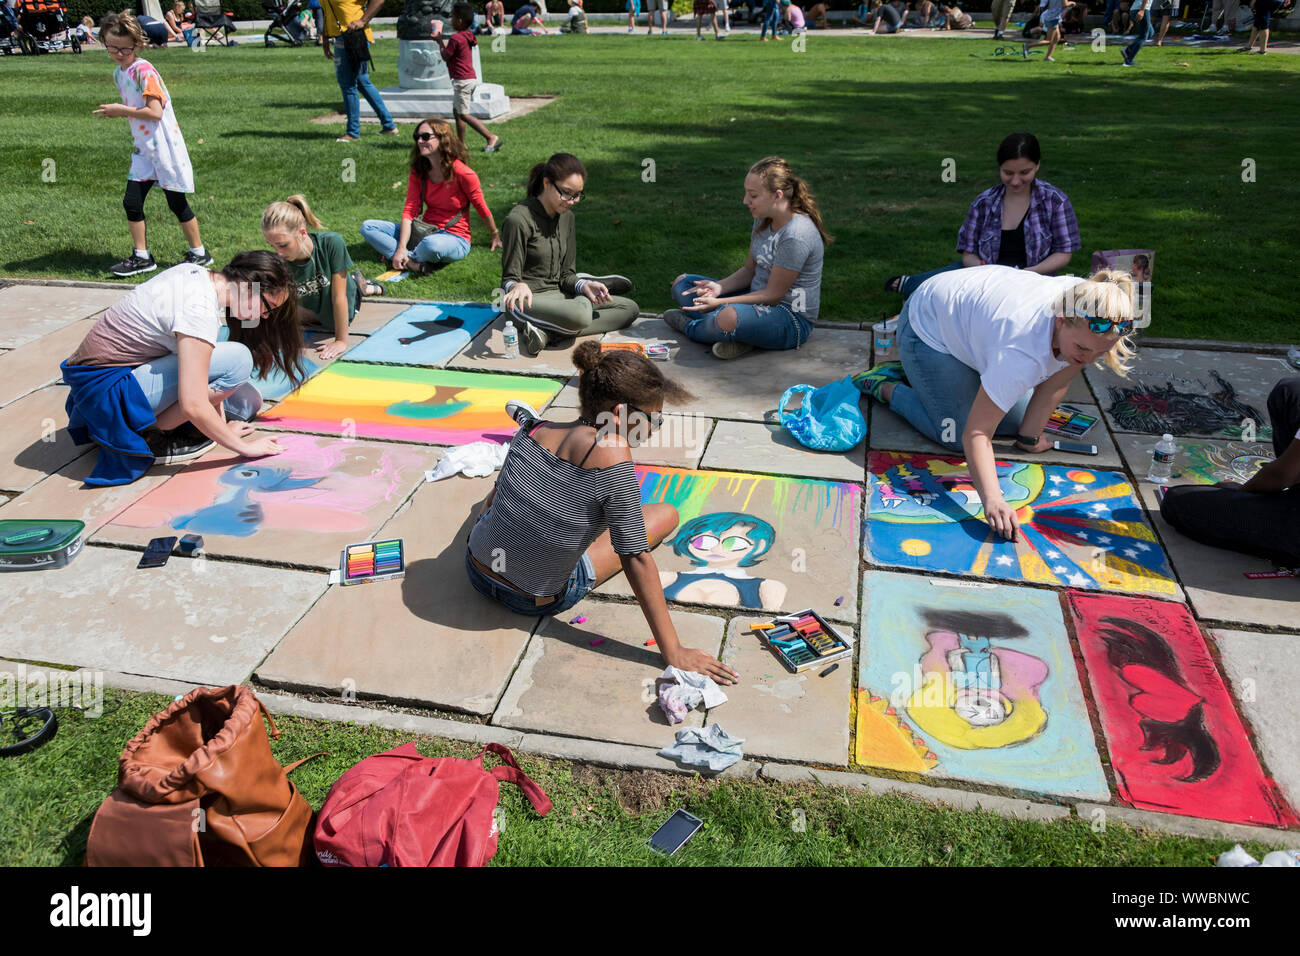 Chalk Festival at the Cleveland Museum of Art in Cleveland Ohio in September 2019. Members of the community were invited to create chalk art. Stock Photo